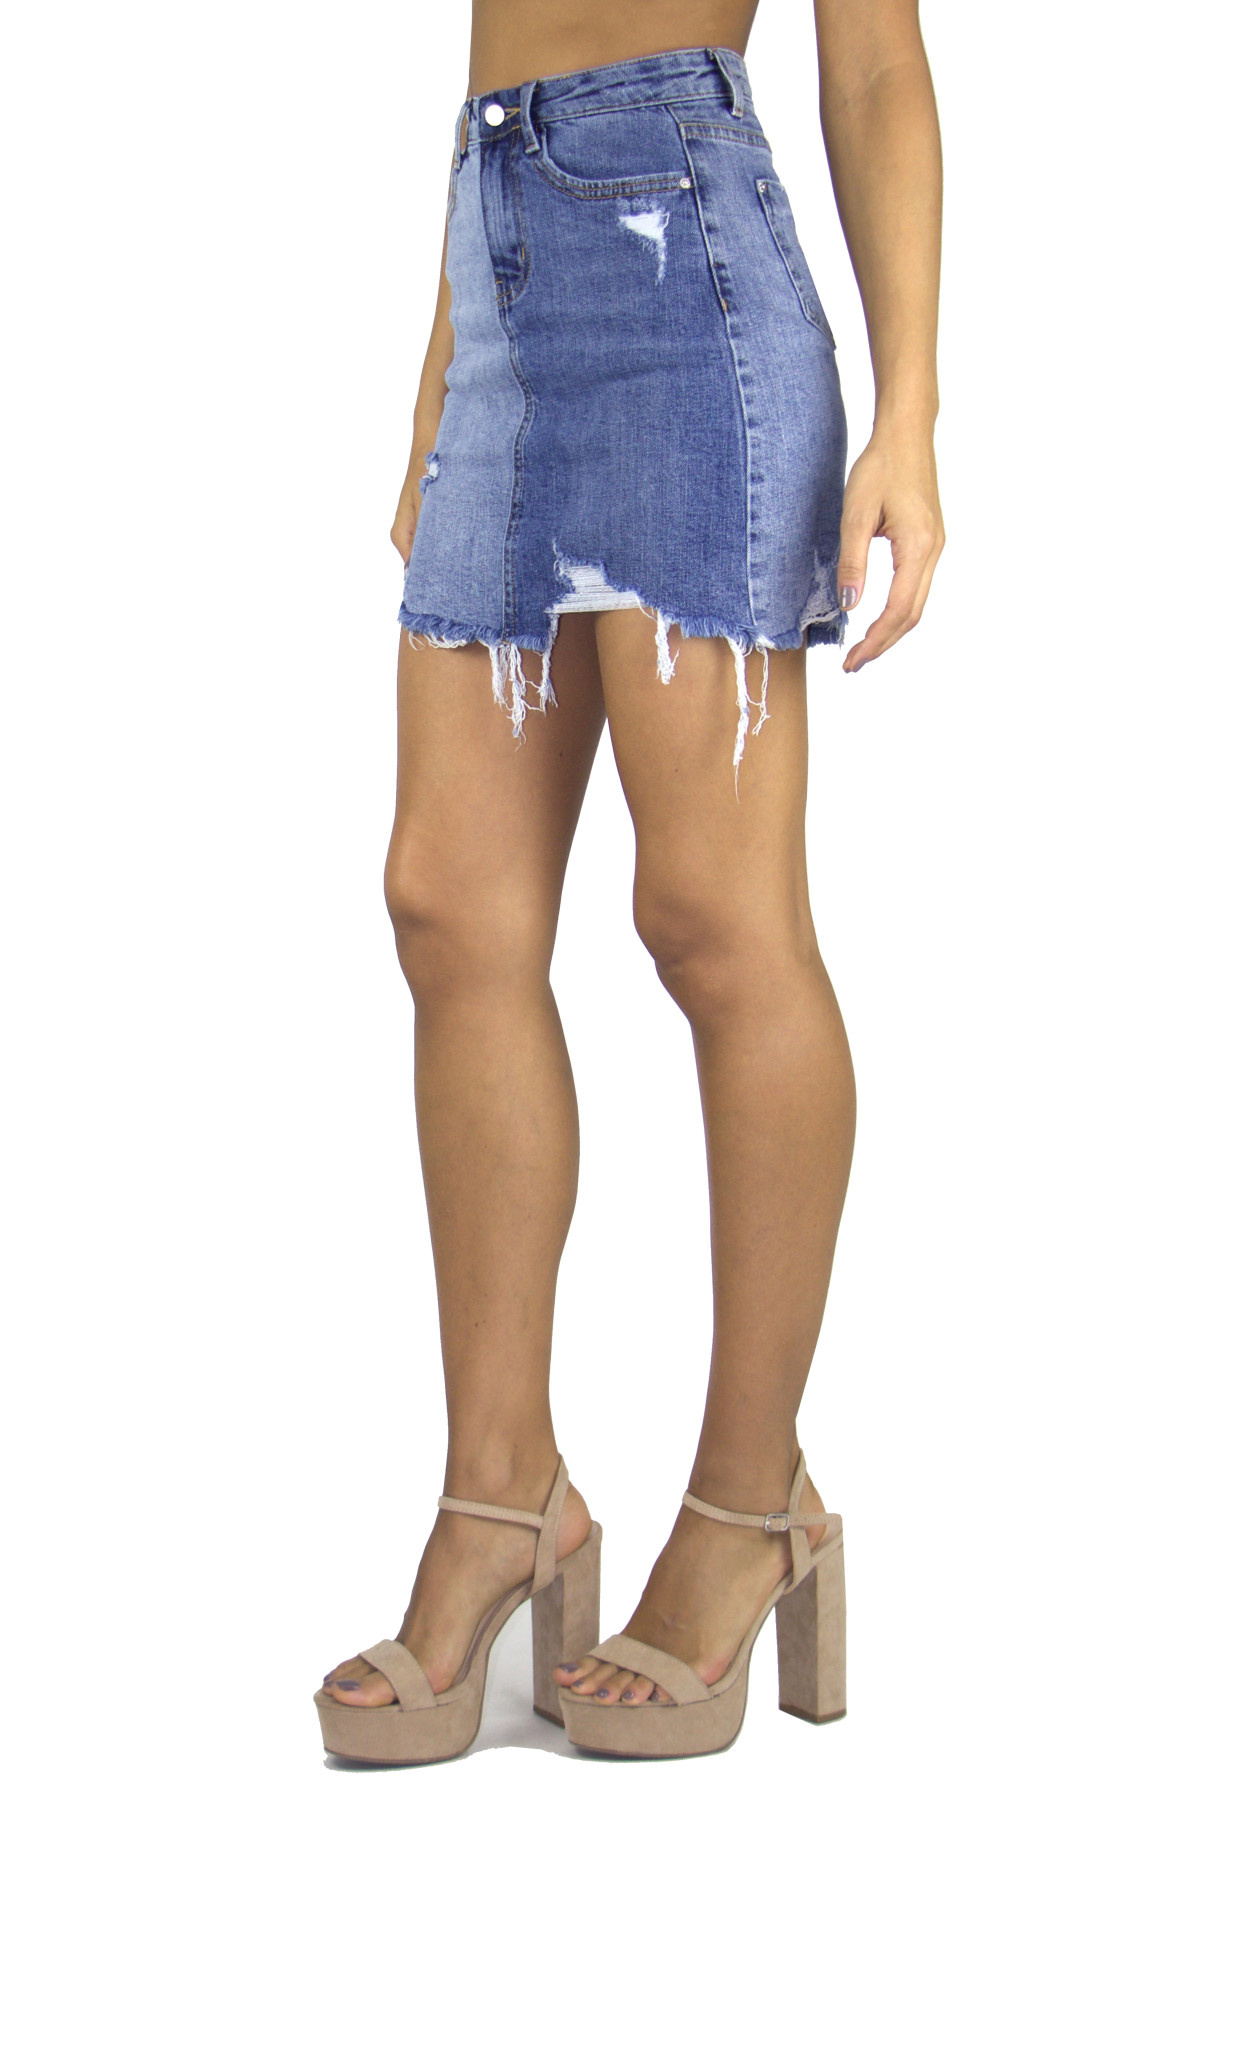 2 Tone Distressed Denim Skirt